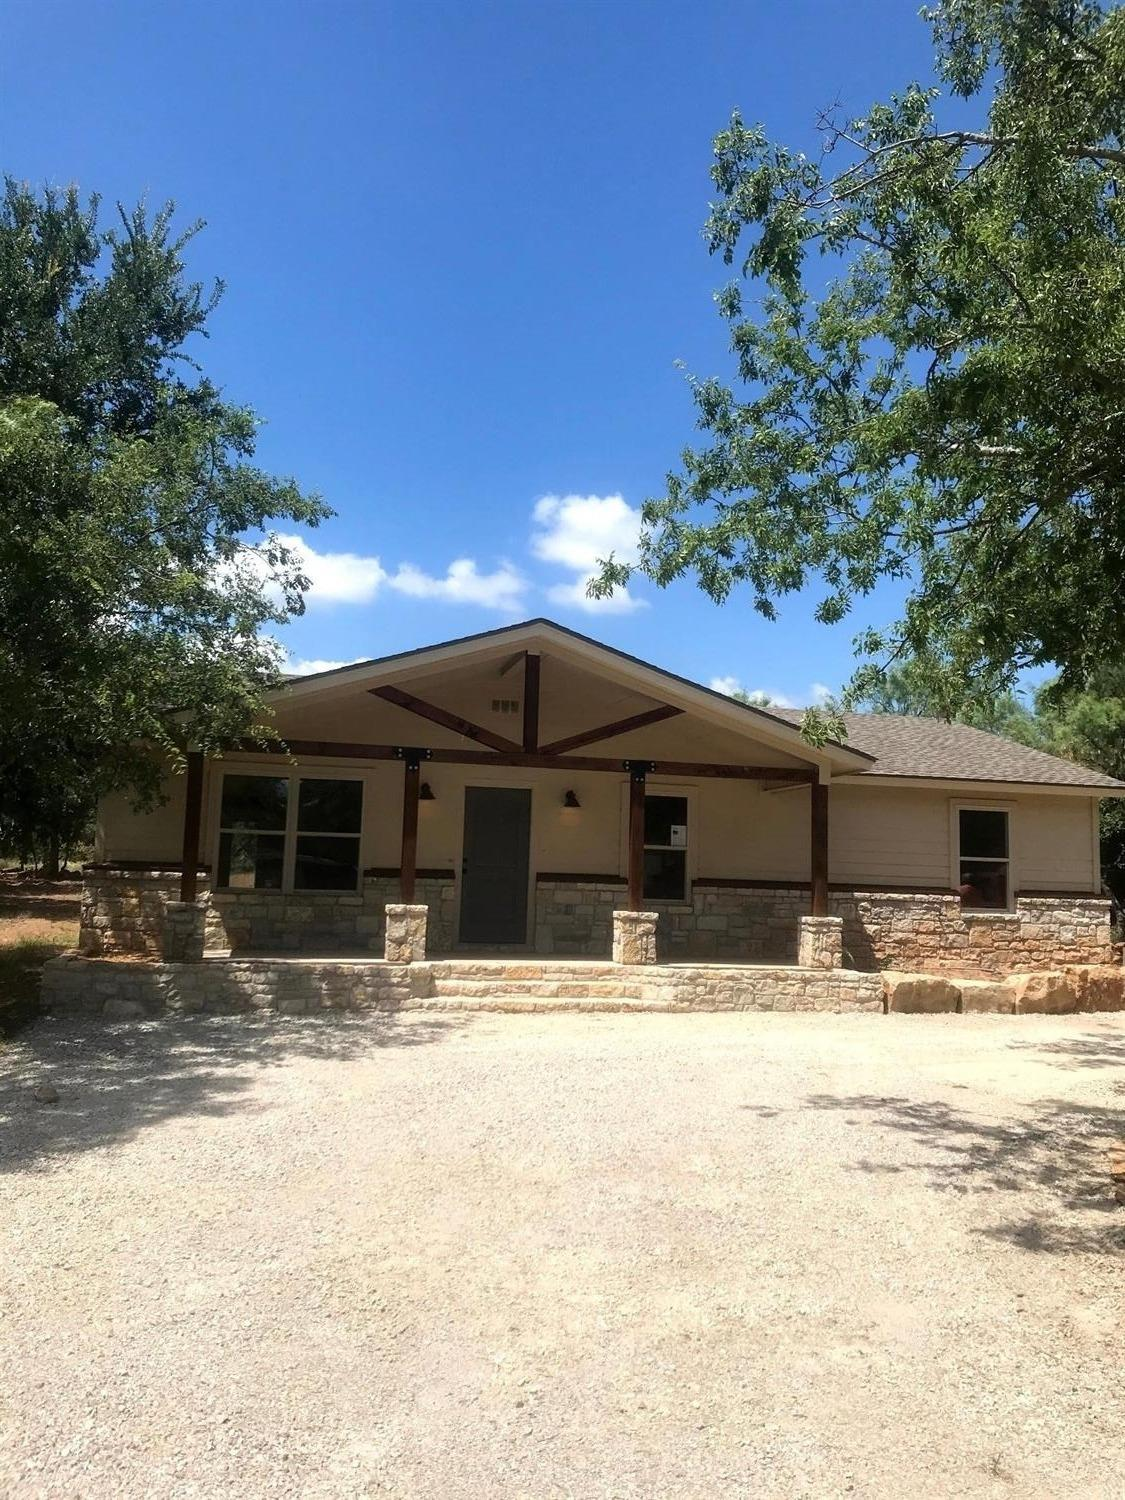 No Fixer-Upper here! Newly constructed home ready to move in & enjoy! Just add your own personal touches!  Wooded lot to sit & relax while watching the wildlife graze.  Water view with all the fun activities of Possum Kingdom Lake close by.  This home is ready for you & your loved ones to start making memories to last a lifetime!